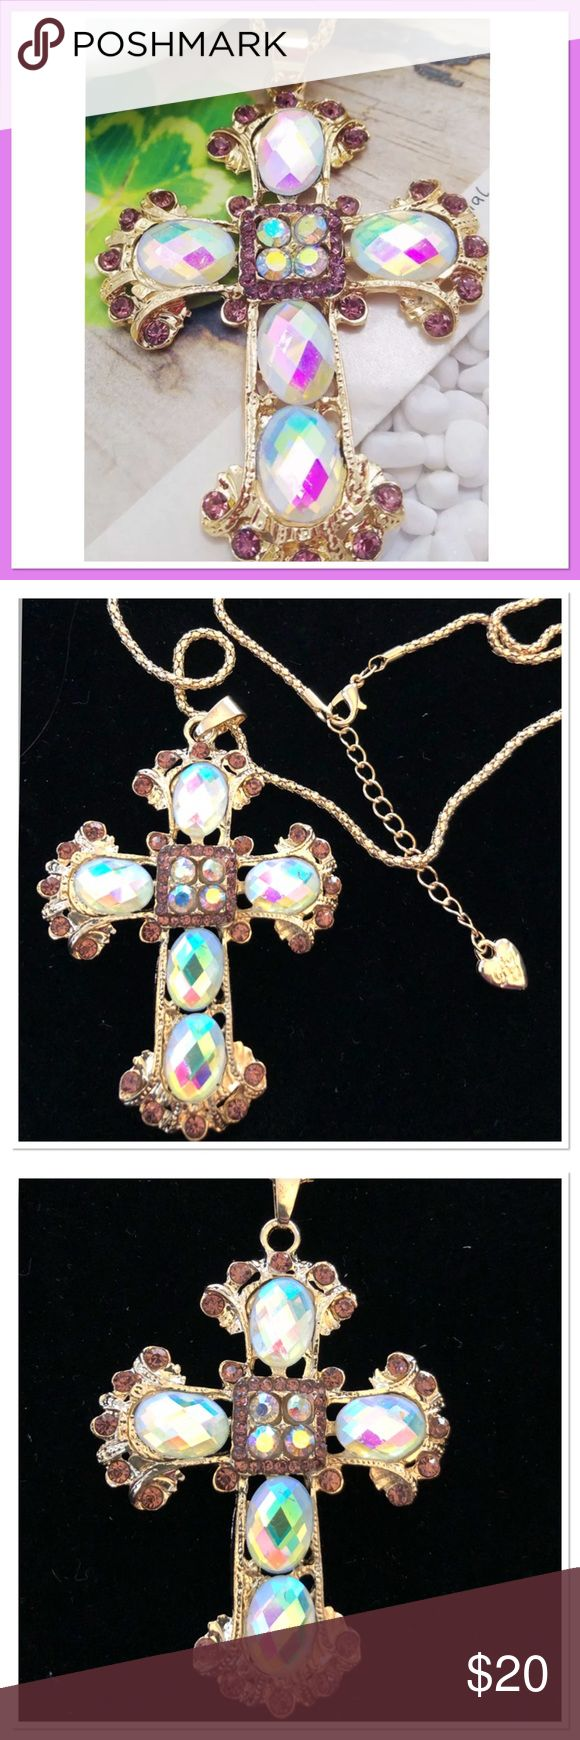 """Beautiful Cross Necklace Gold plated necklace with iridescent stones and rhinestones on a 26"""" gold rope chain with a 2"""" extender. NEW Jewelry Necklaces"""